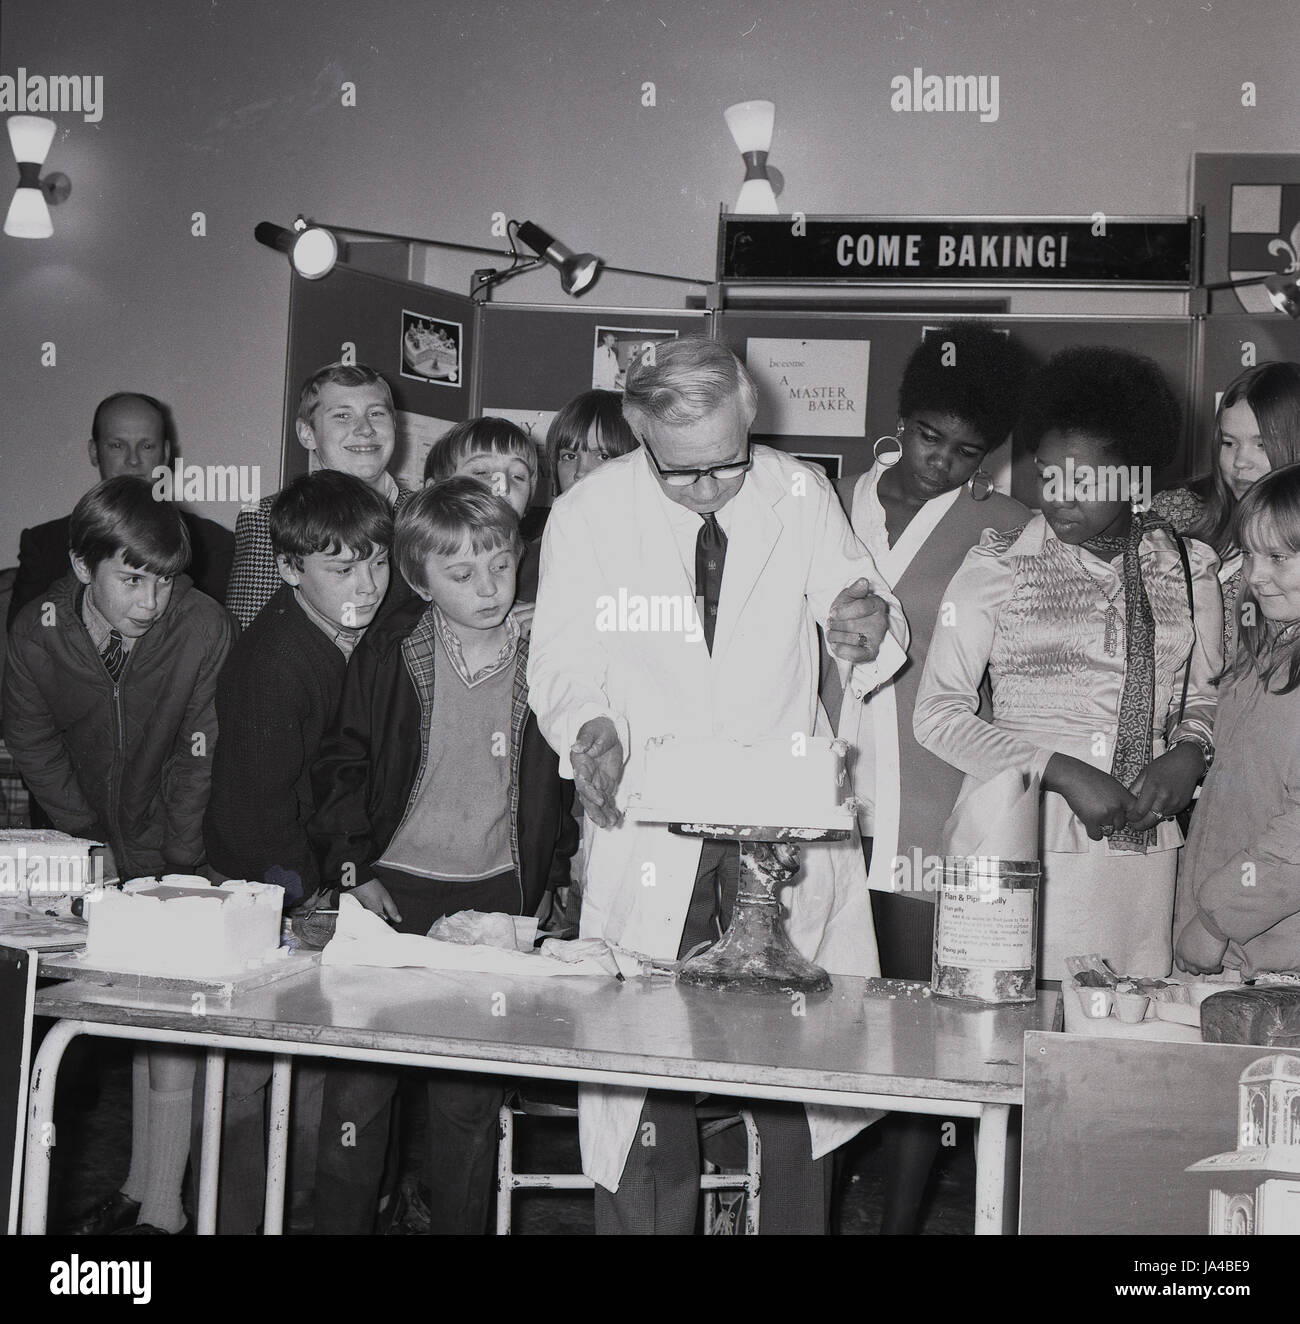 1960s, historical, group of school students at a career advise show, watch a demonstration at a baking stand, London, - Stock Image